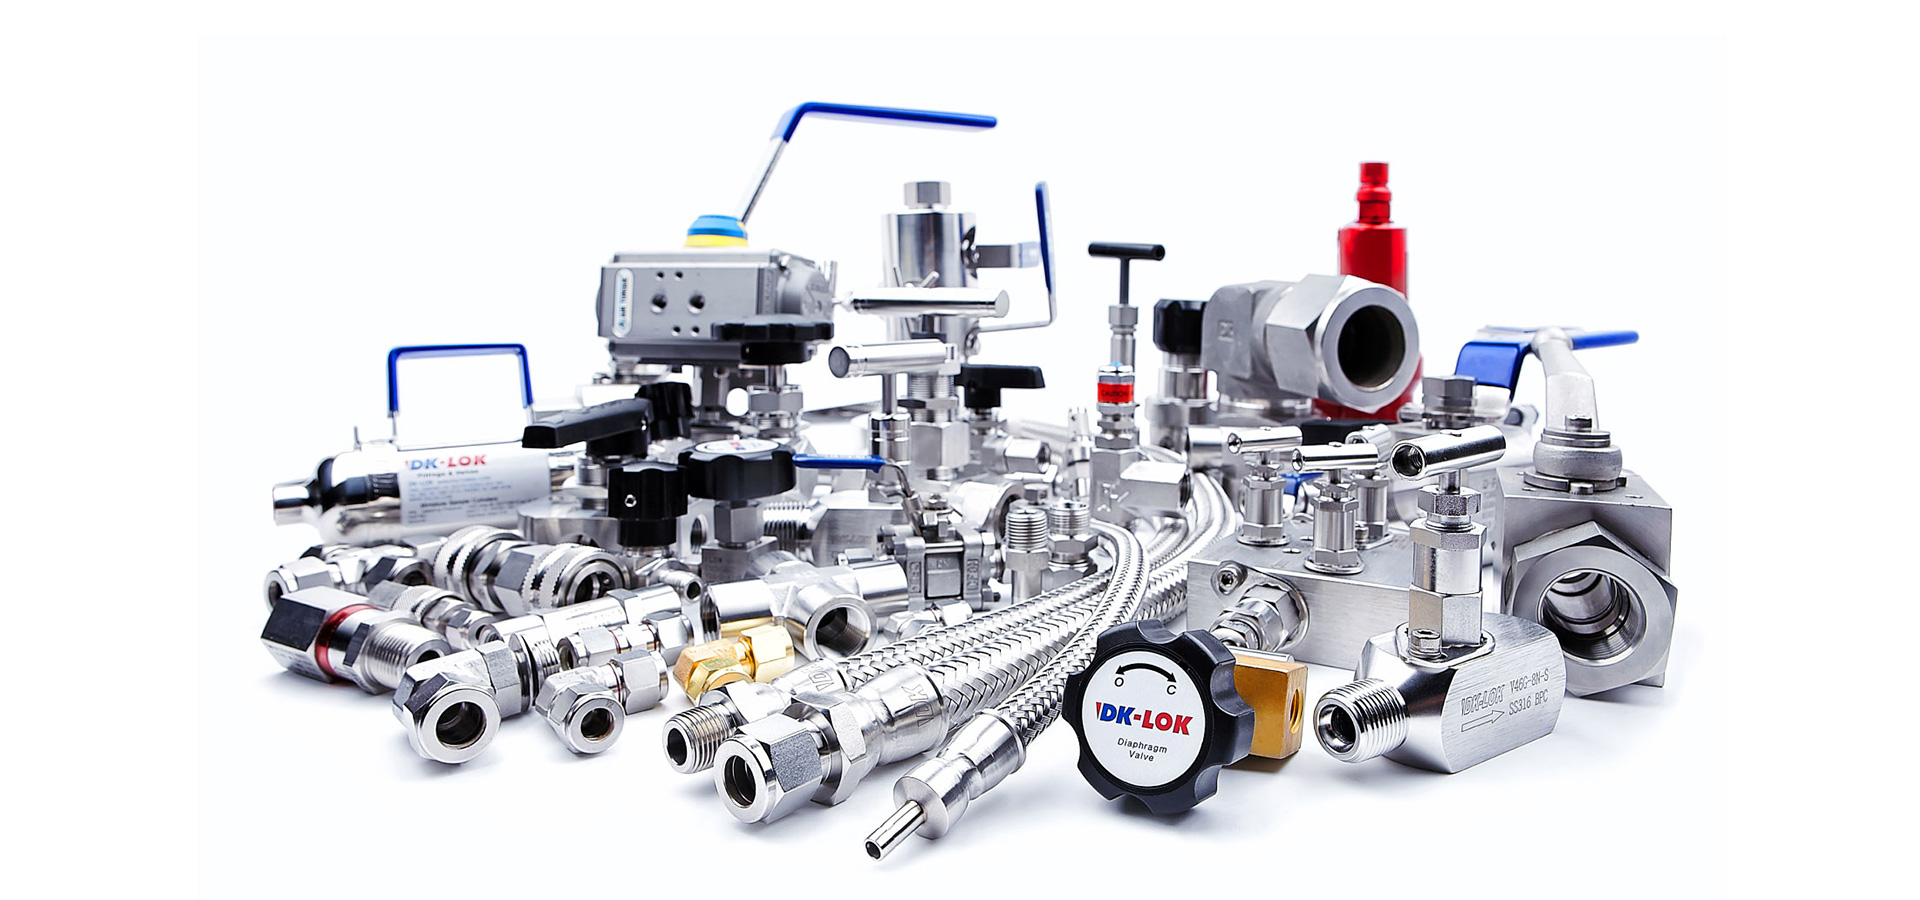 Most Trustable Tube, Hose, Valves and Fittings Supplier | Simleccos